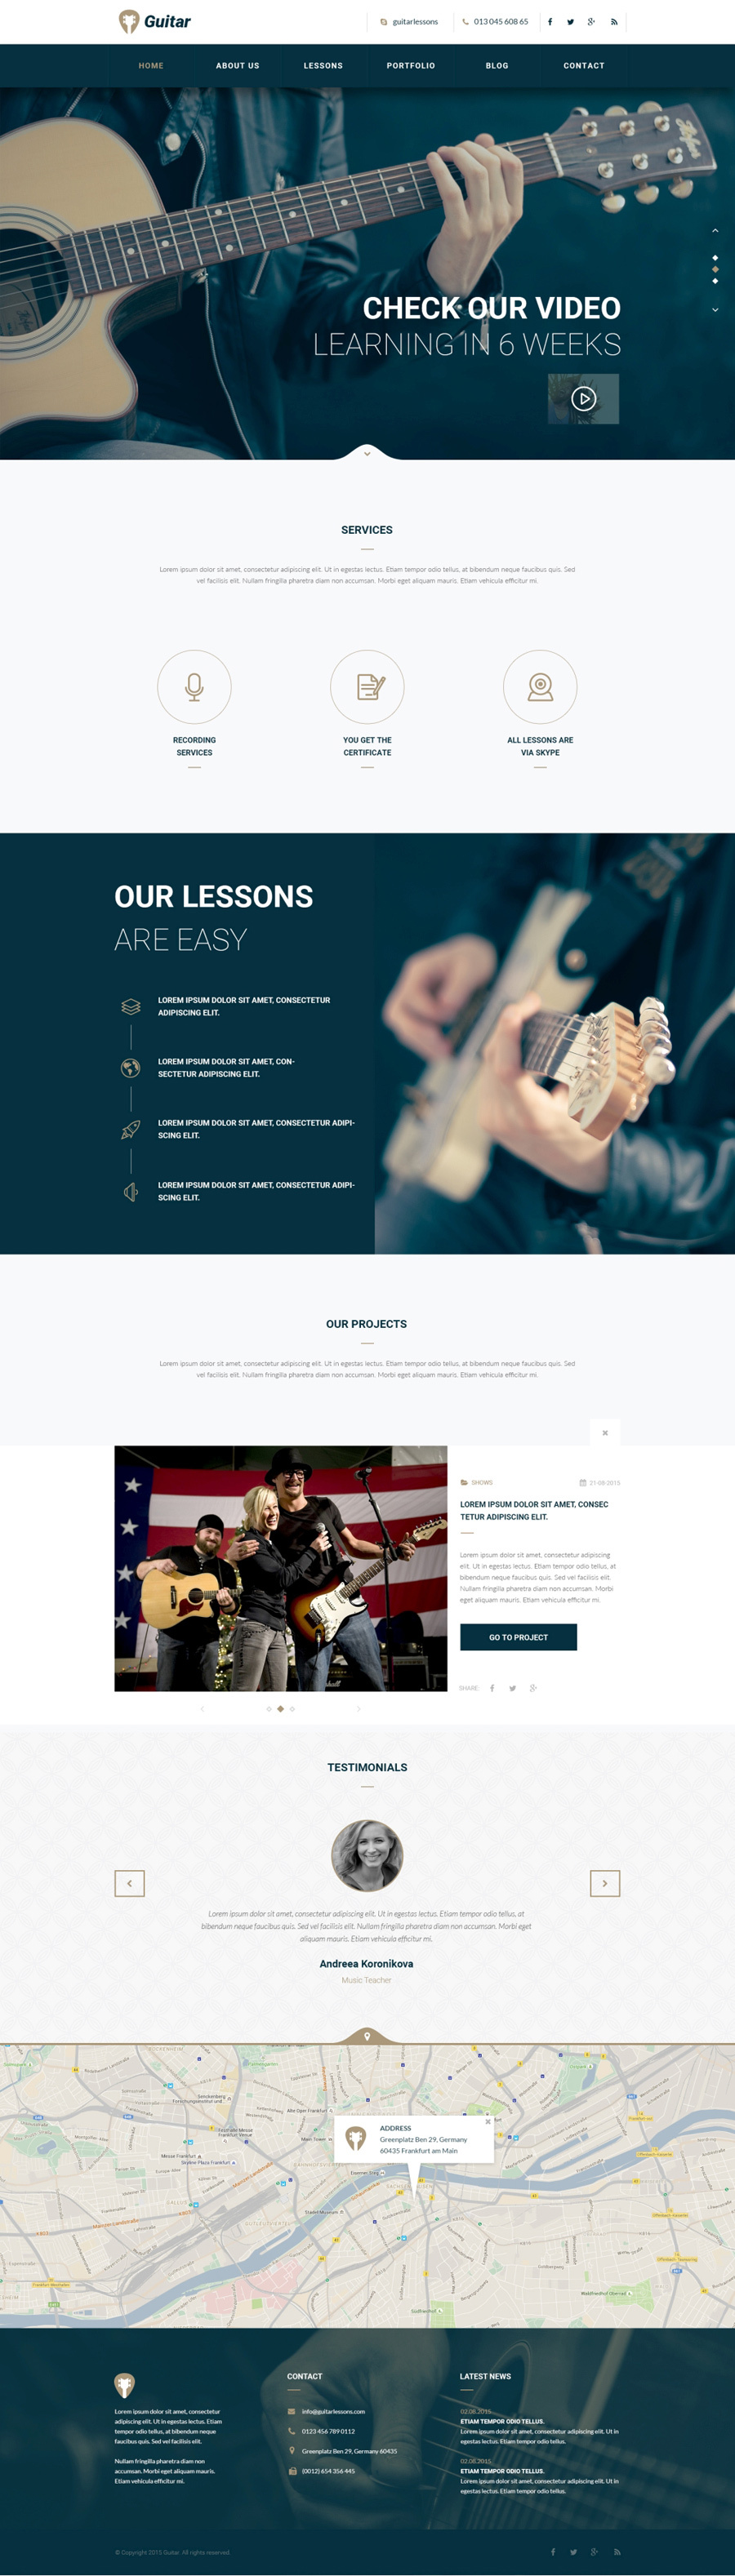 guitar-school-educational-music-psd-template